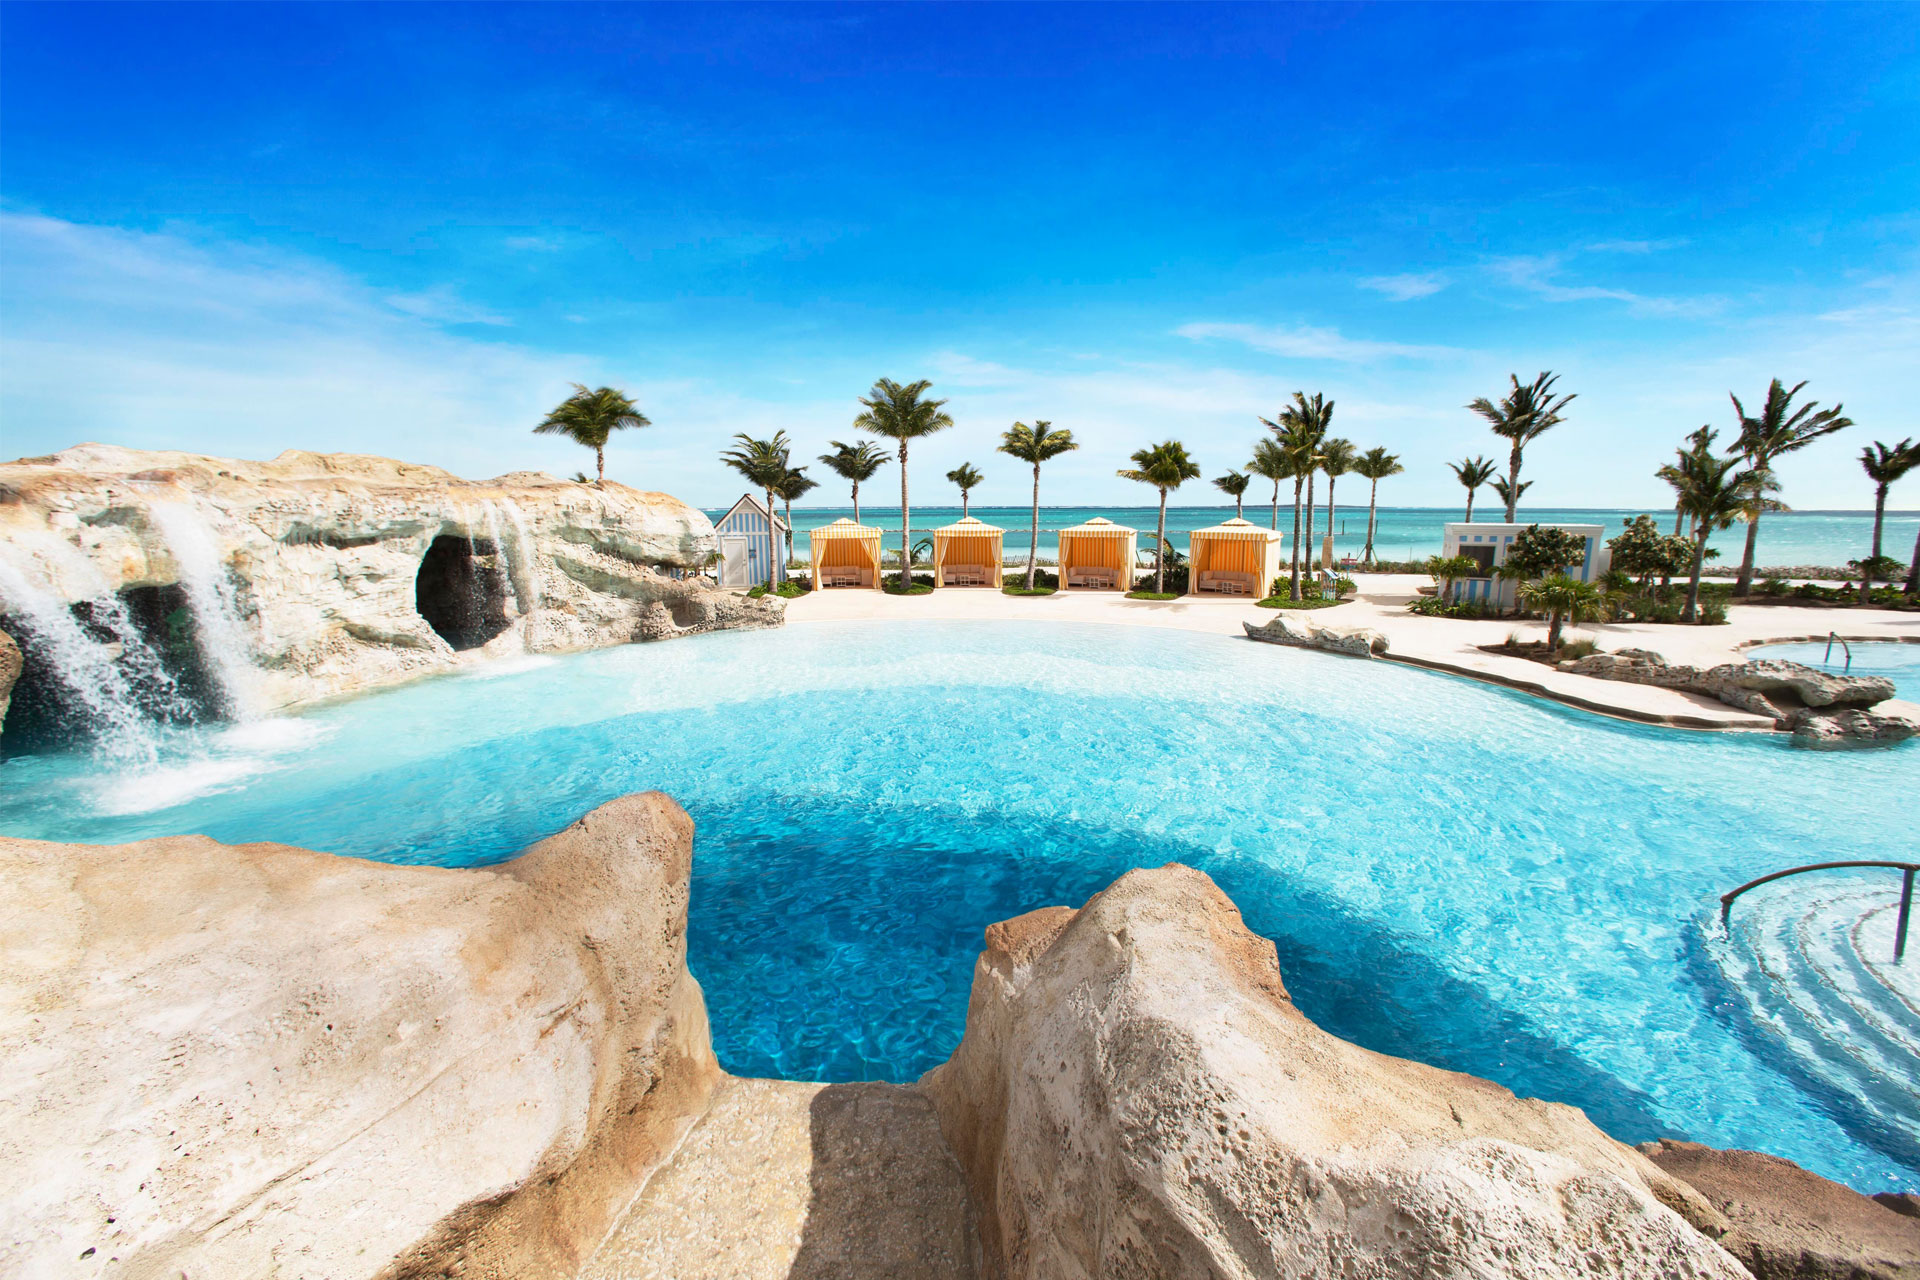 Baha Mar Blue Hole Pool; Courtesy of Baha Mar Resort